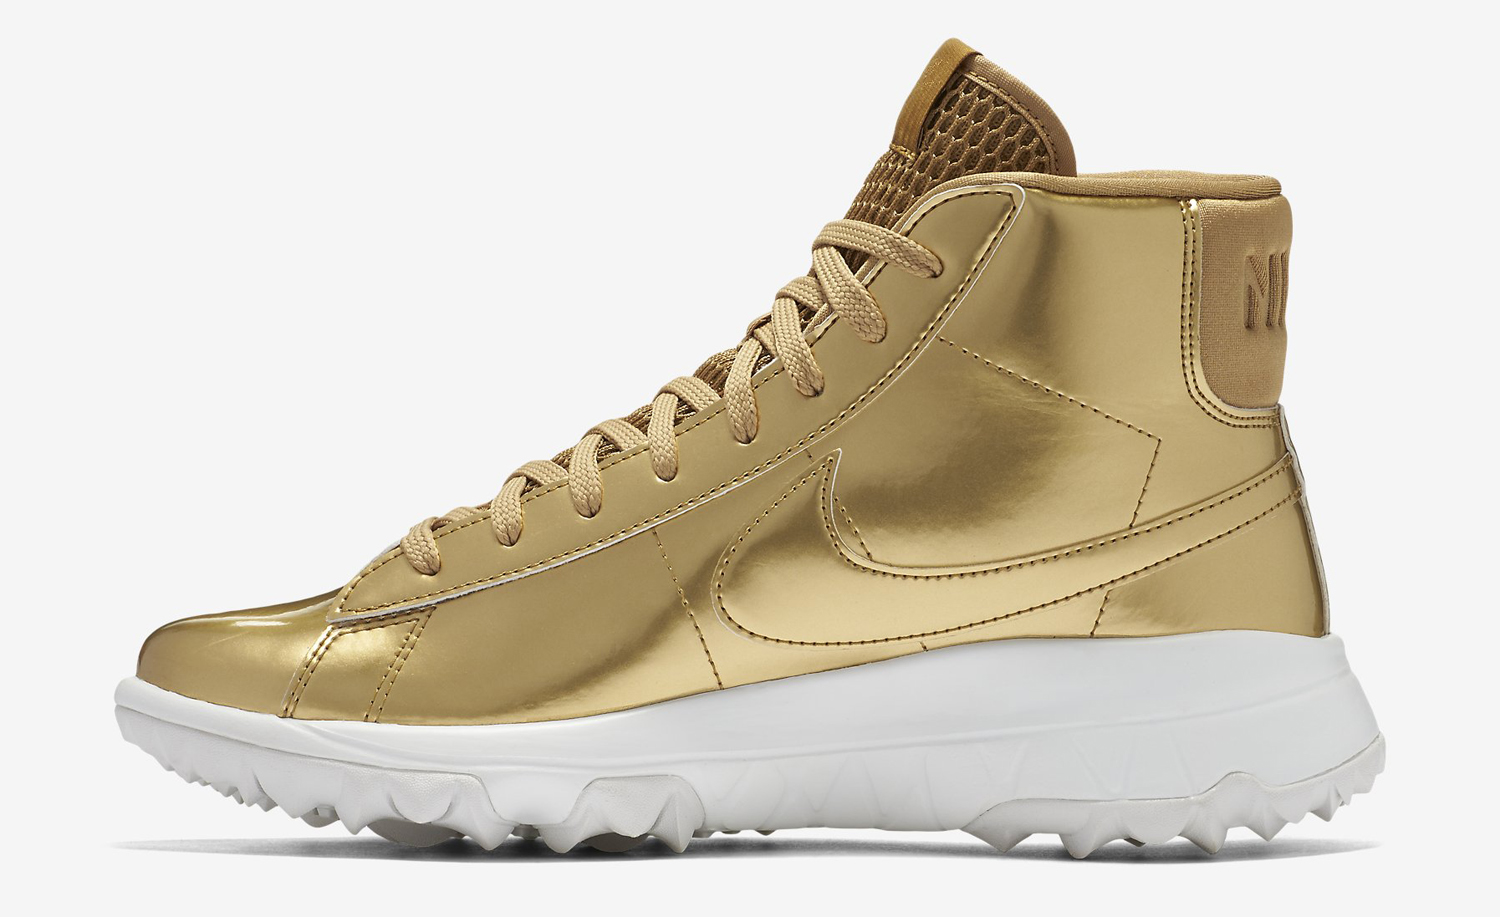 c3a833bebad Nike Blazer Gold Golf Shoes | Sole Collector